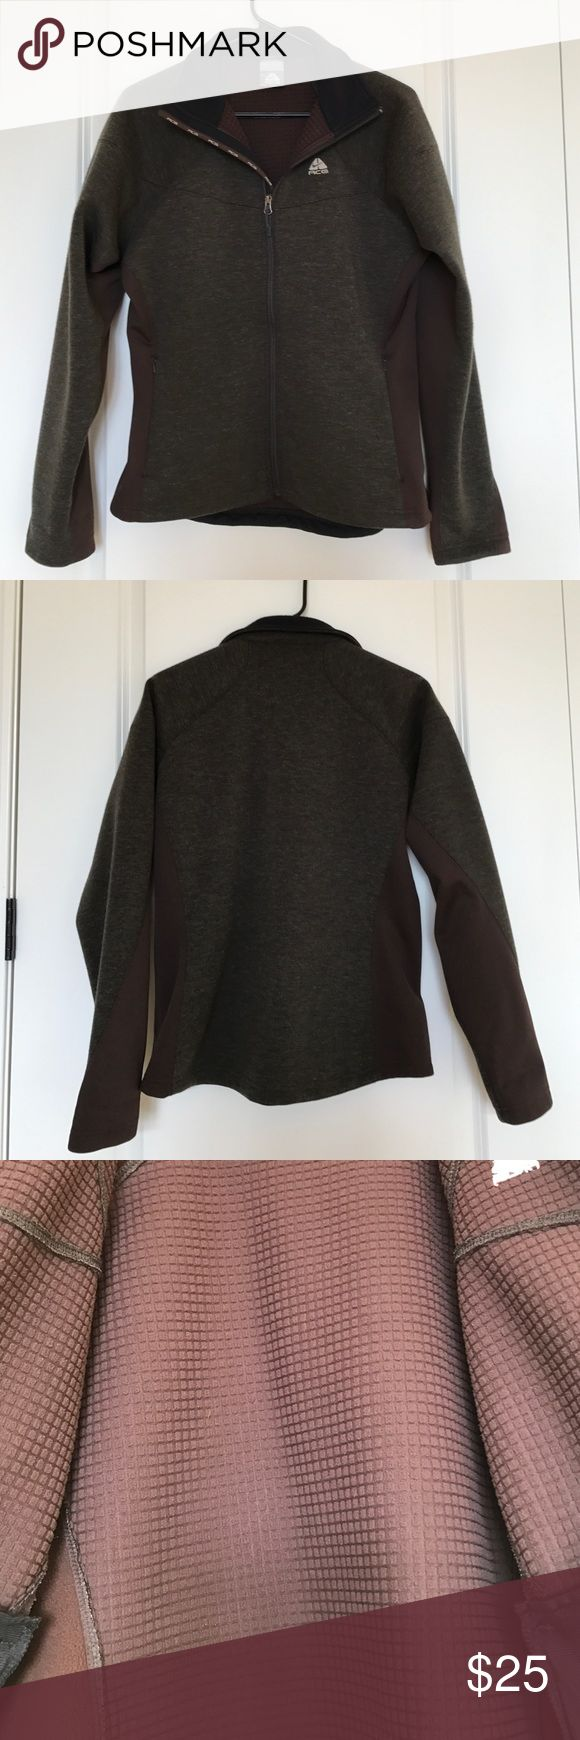 Nike ACG lightweight jacket. Lightweight Nike ACG jacket. Two-toned brown. Polyester and acrylic mix. Great casual look. Great condition. Nike Jackets & Coats